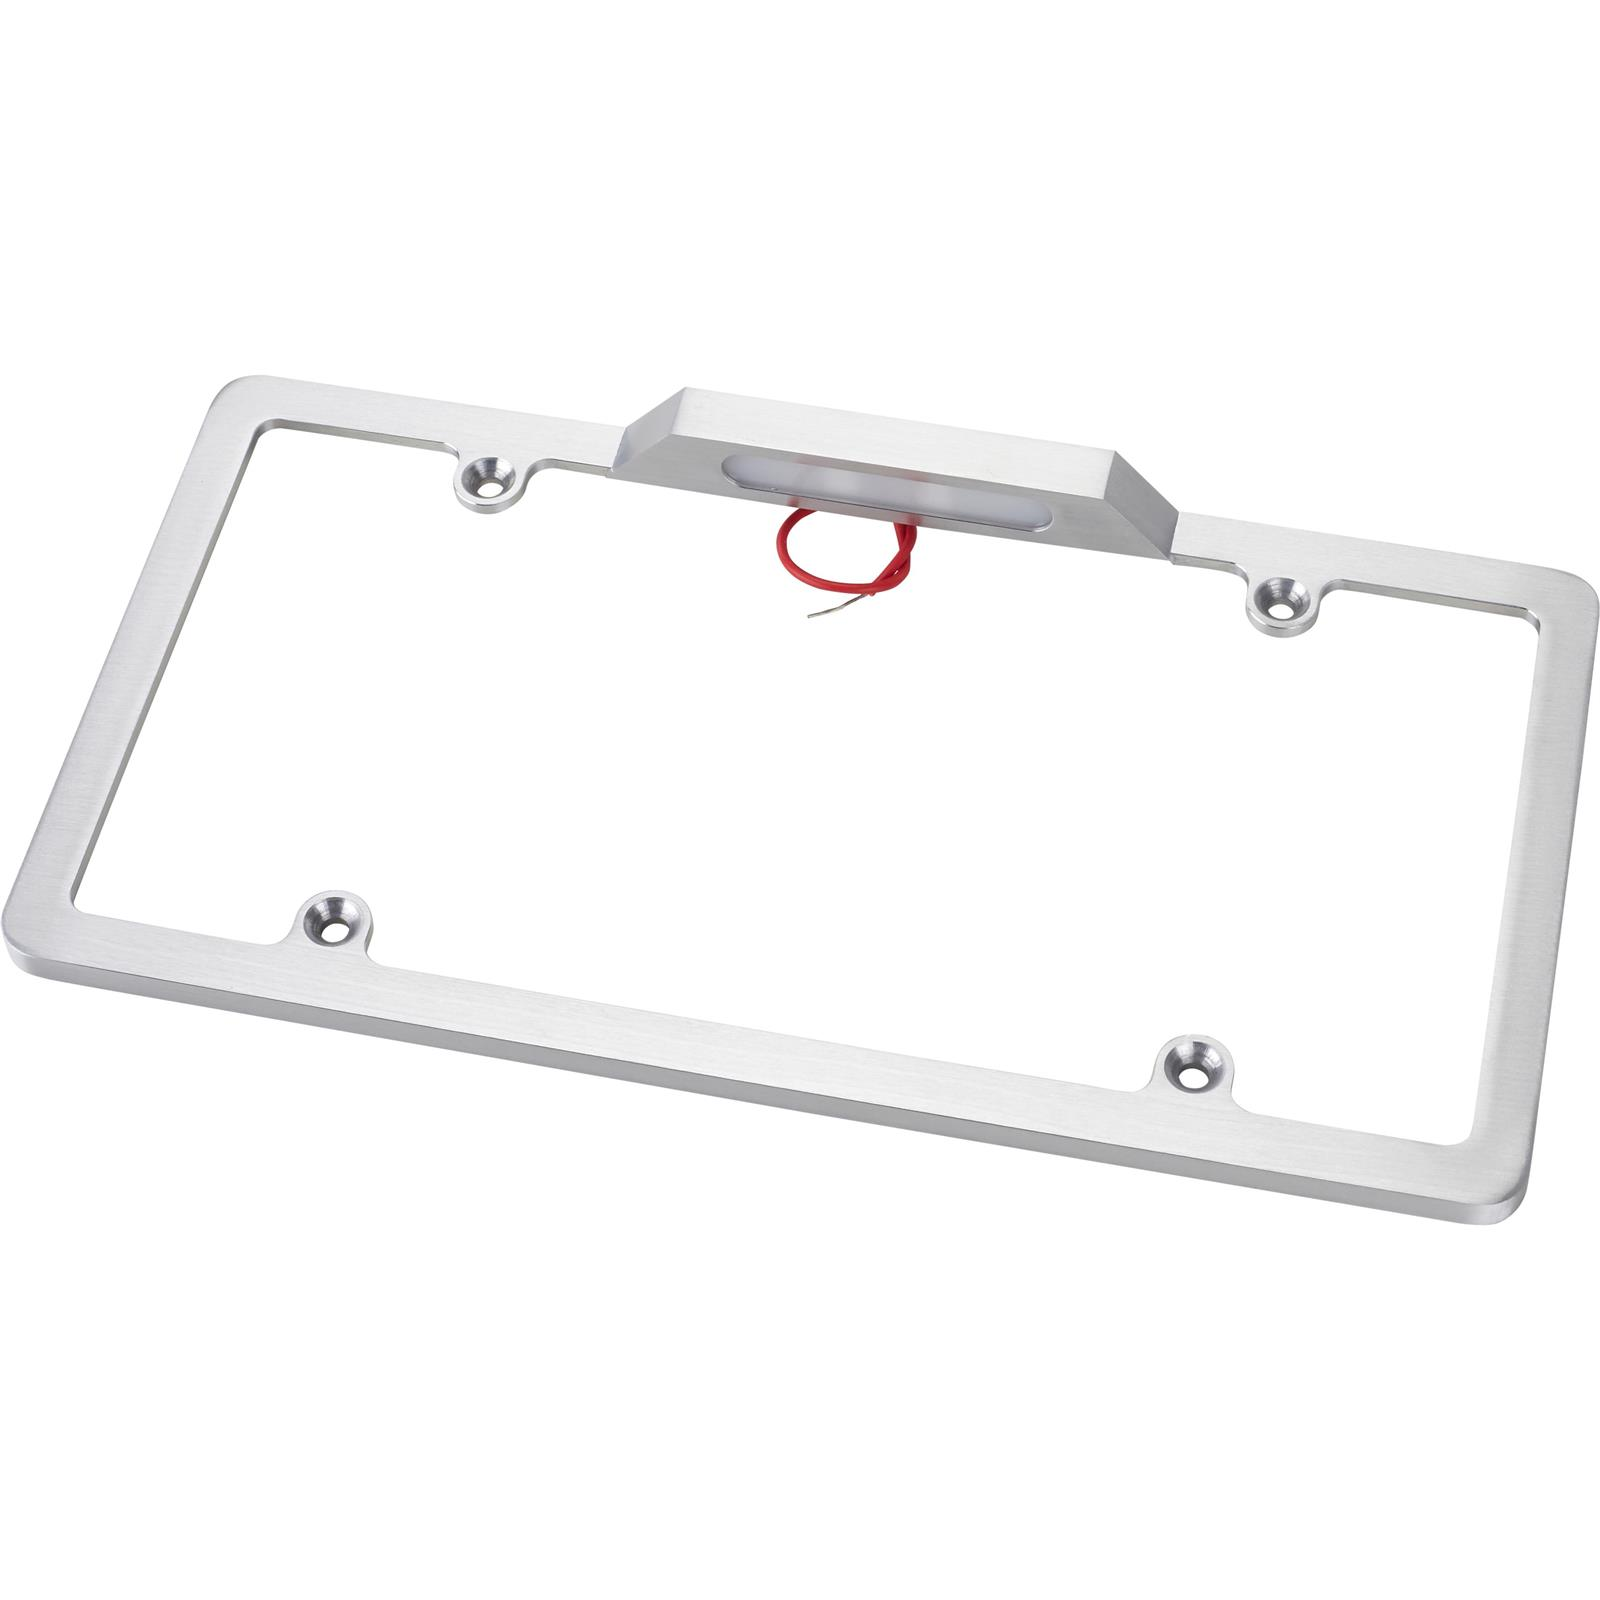 1932 Ford Car Pick Up Truck Front Rear License Plate Holder Chrome Frames New